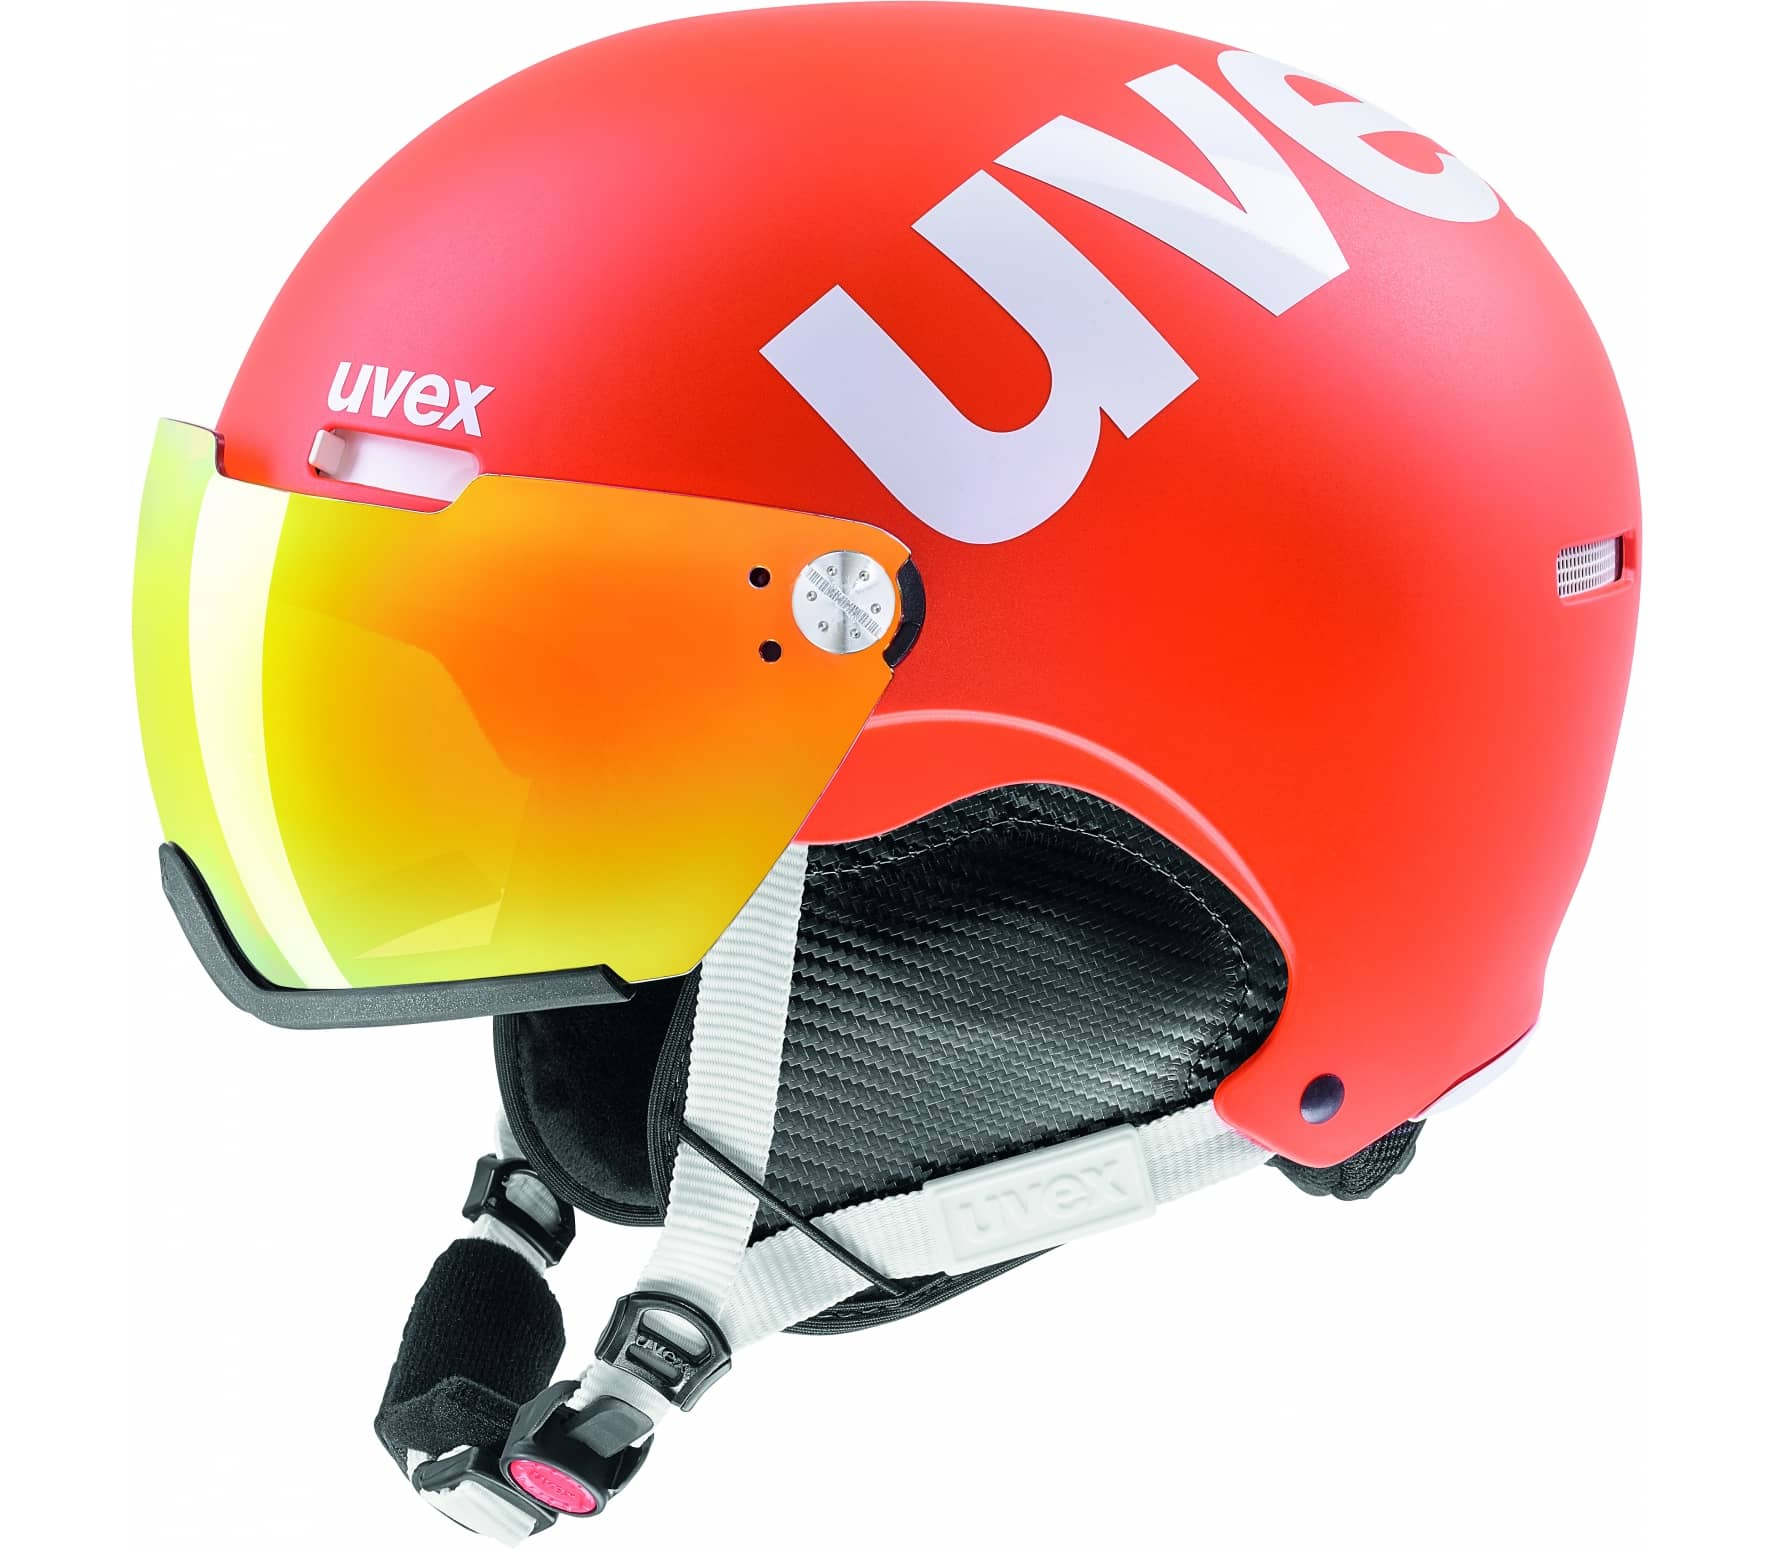 Uvex - Hlmt 500 Visor Skihelm (orange) - L (59?...